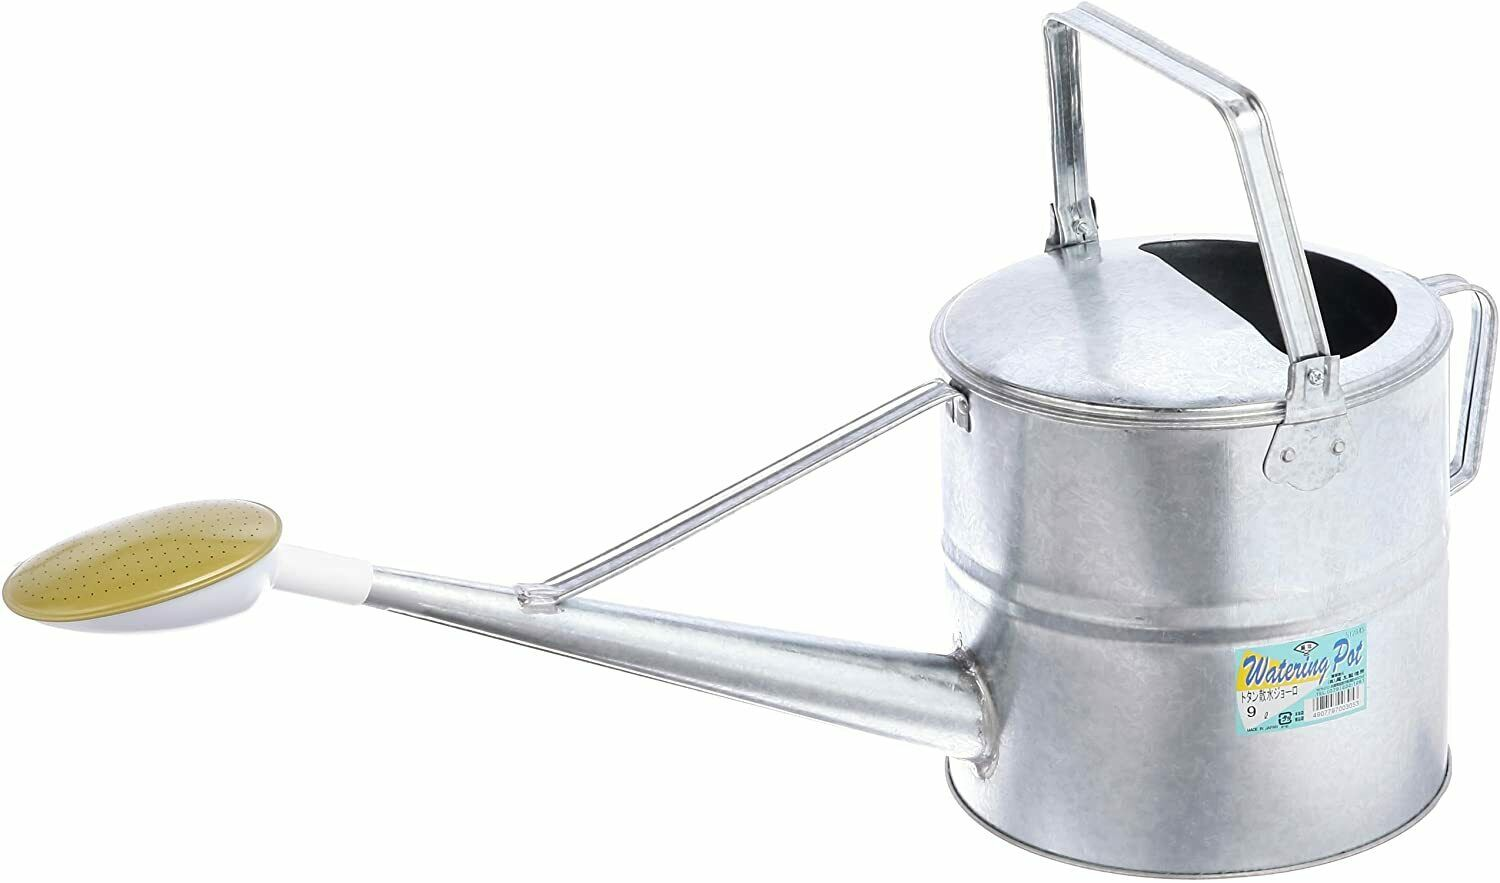 Onoe Japanese Sprinkling Watering Can Galvanized Steel 4L 6L 9L Safety3 Japan